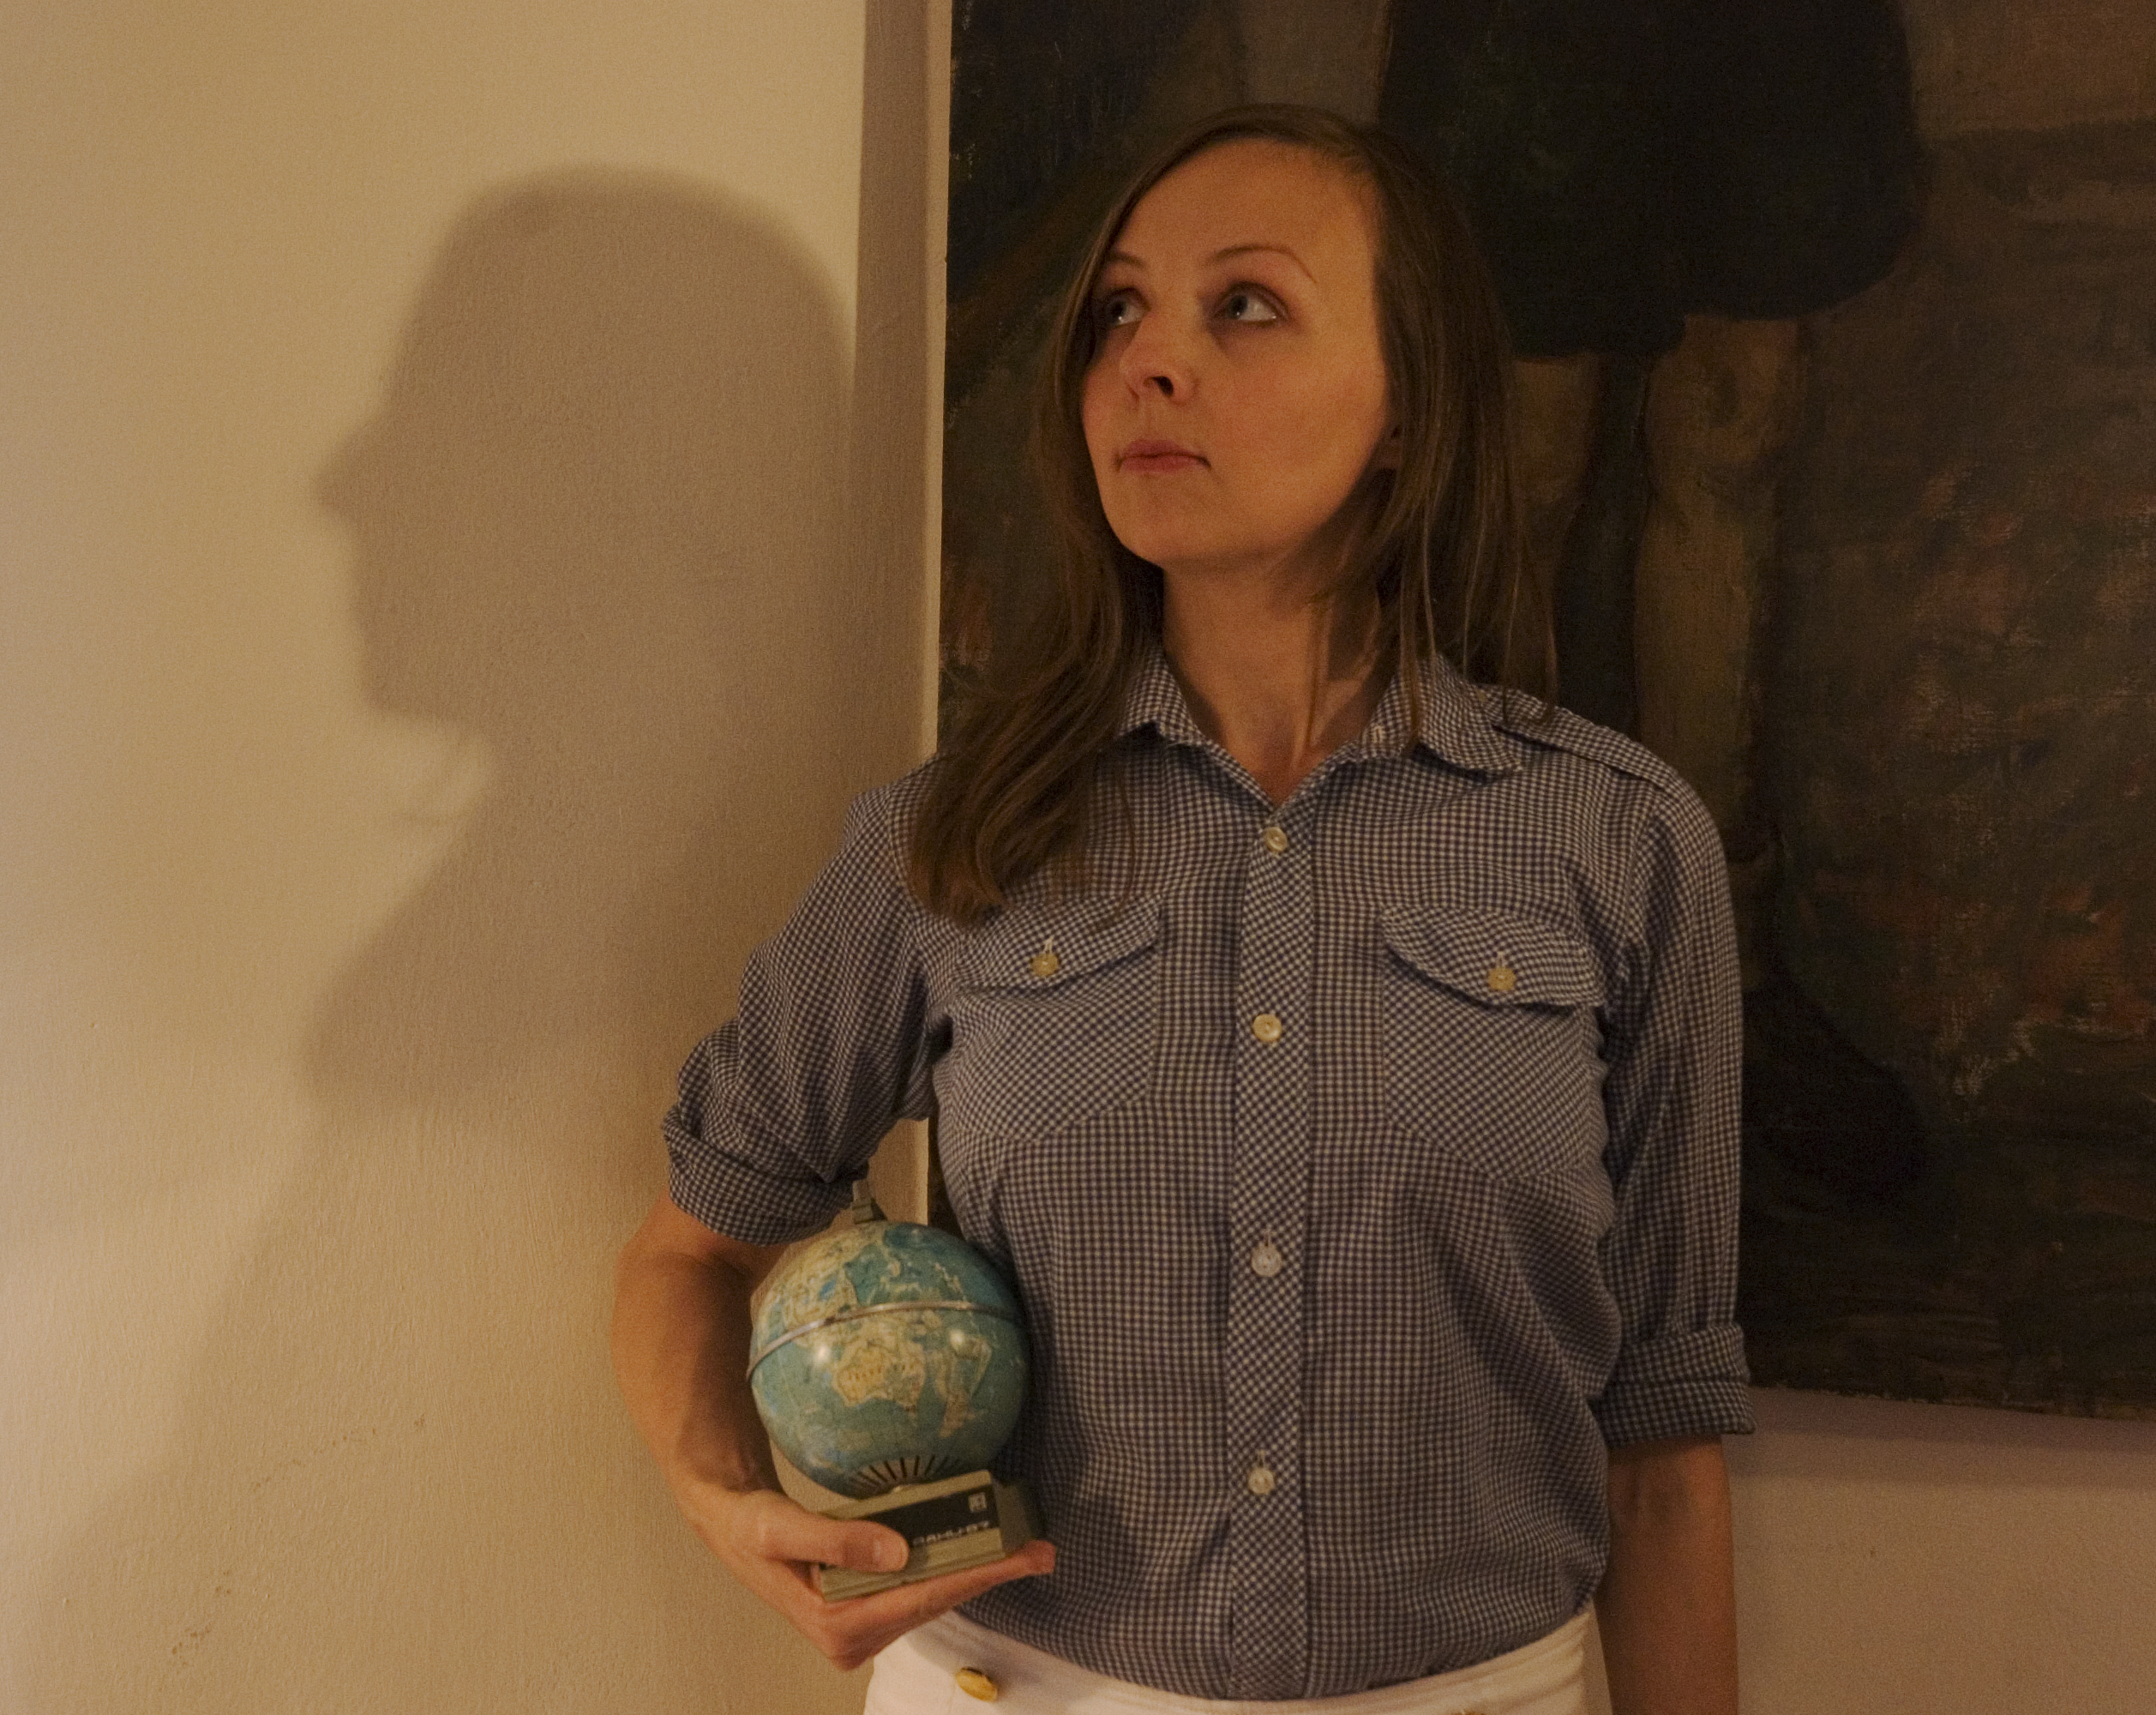 Sonja Vectomov with Globe